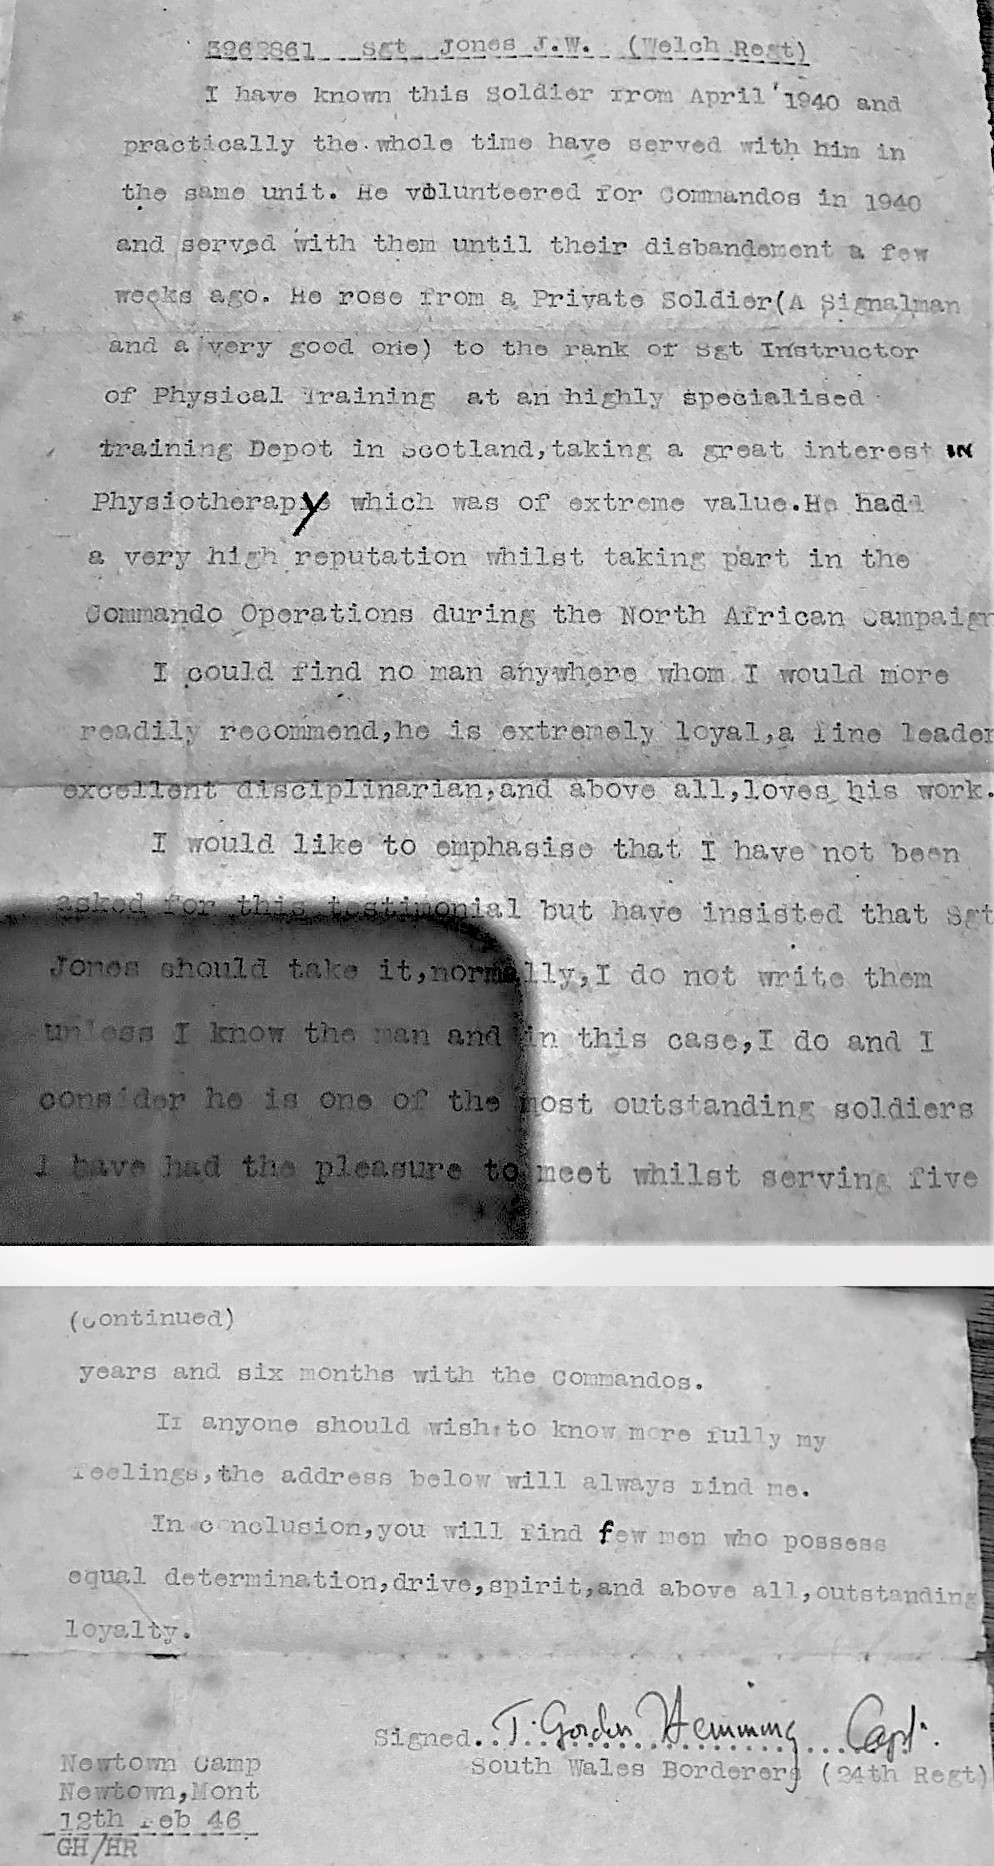 John Willis-Jones reference letter from Capt. T. Gordon-Hemmings